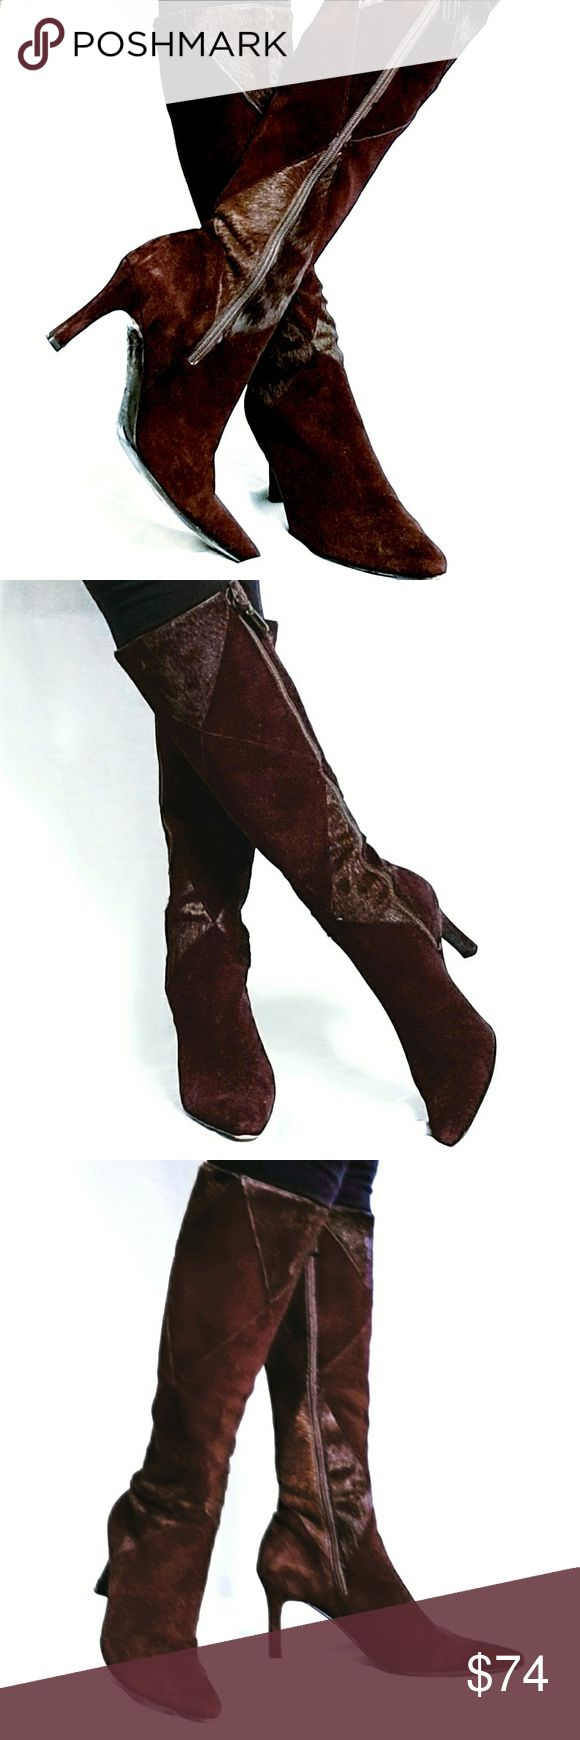 ANTONIO MELANI Suede & Mohair STUNNER pair of boots by Antonio Melani features a deep, rich, reddish-brown suede leather and mohair combination in a patchwork design. Warm and perfect for an exceptionally cold winter, these boots will keep you tootsies toasty through the coldest snaps. EUC. Have been worn twice. Heel, toe-tips, all materials in tact. Only the soles show normal, but minimal wear. I live in Texas. These beauties need to be wooorn and showcased!! ANTONIO MELANI Shoes Heeled…